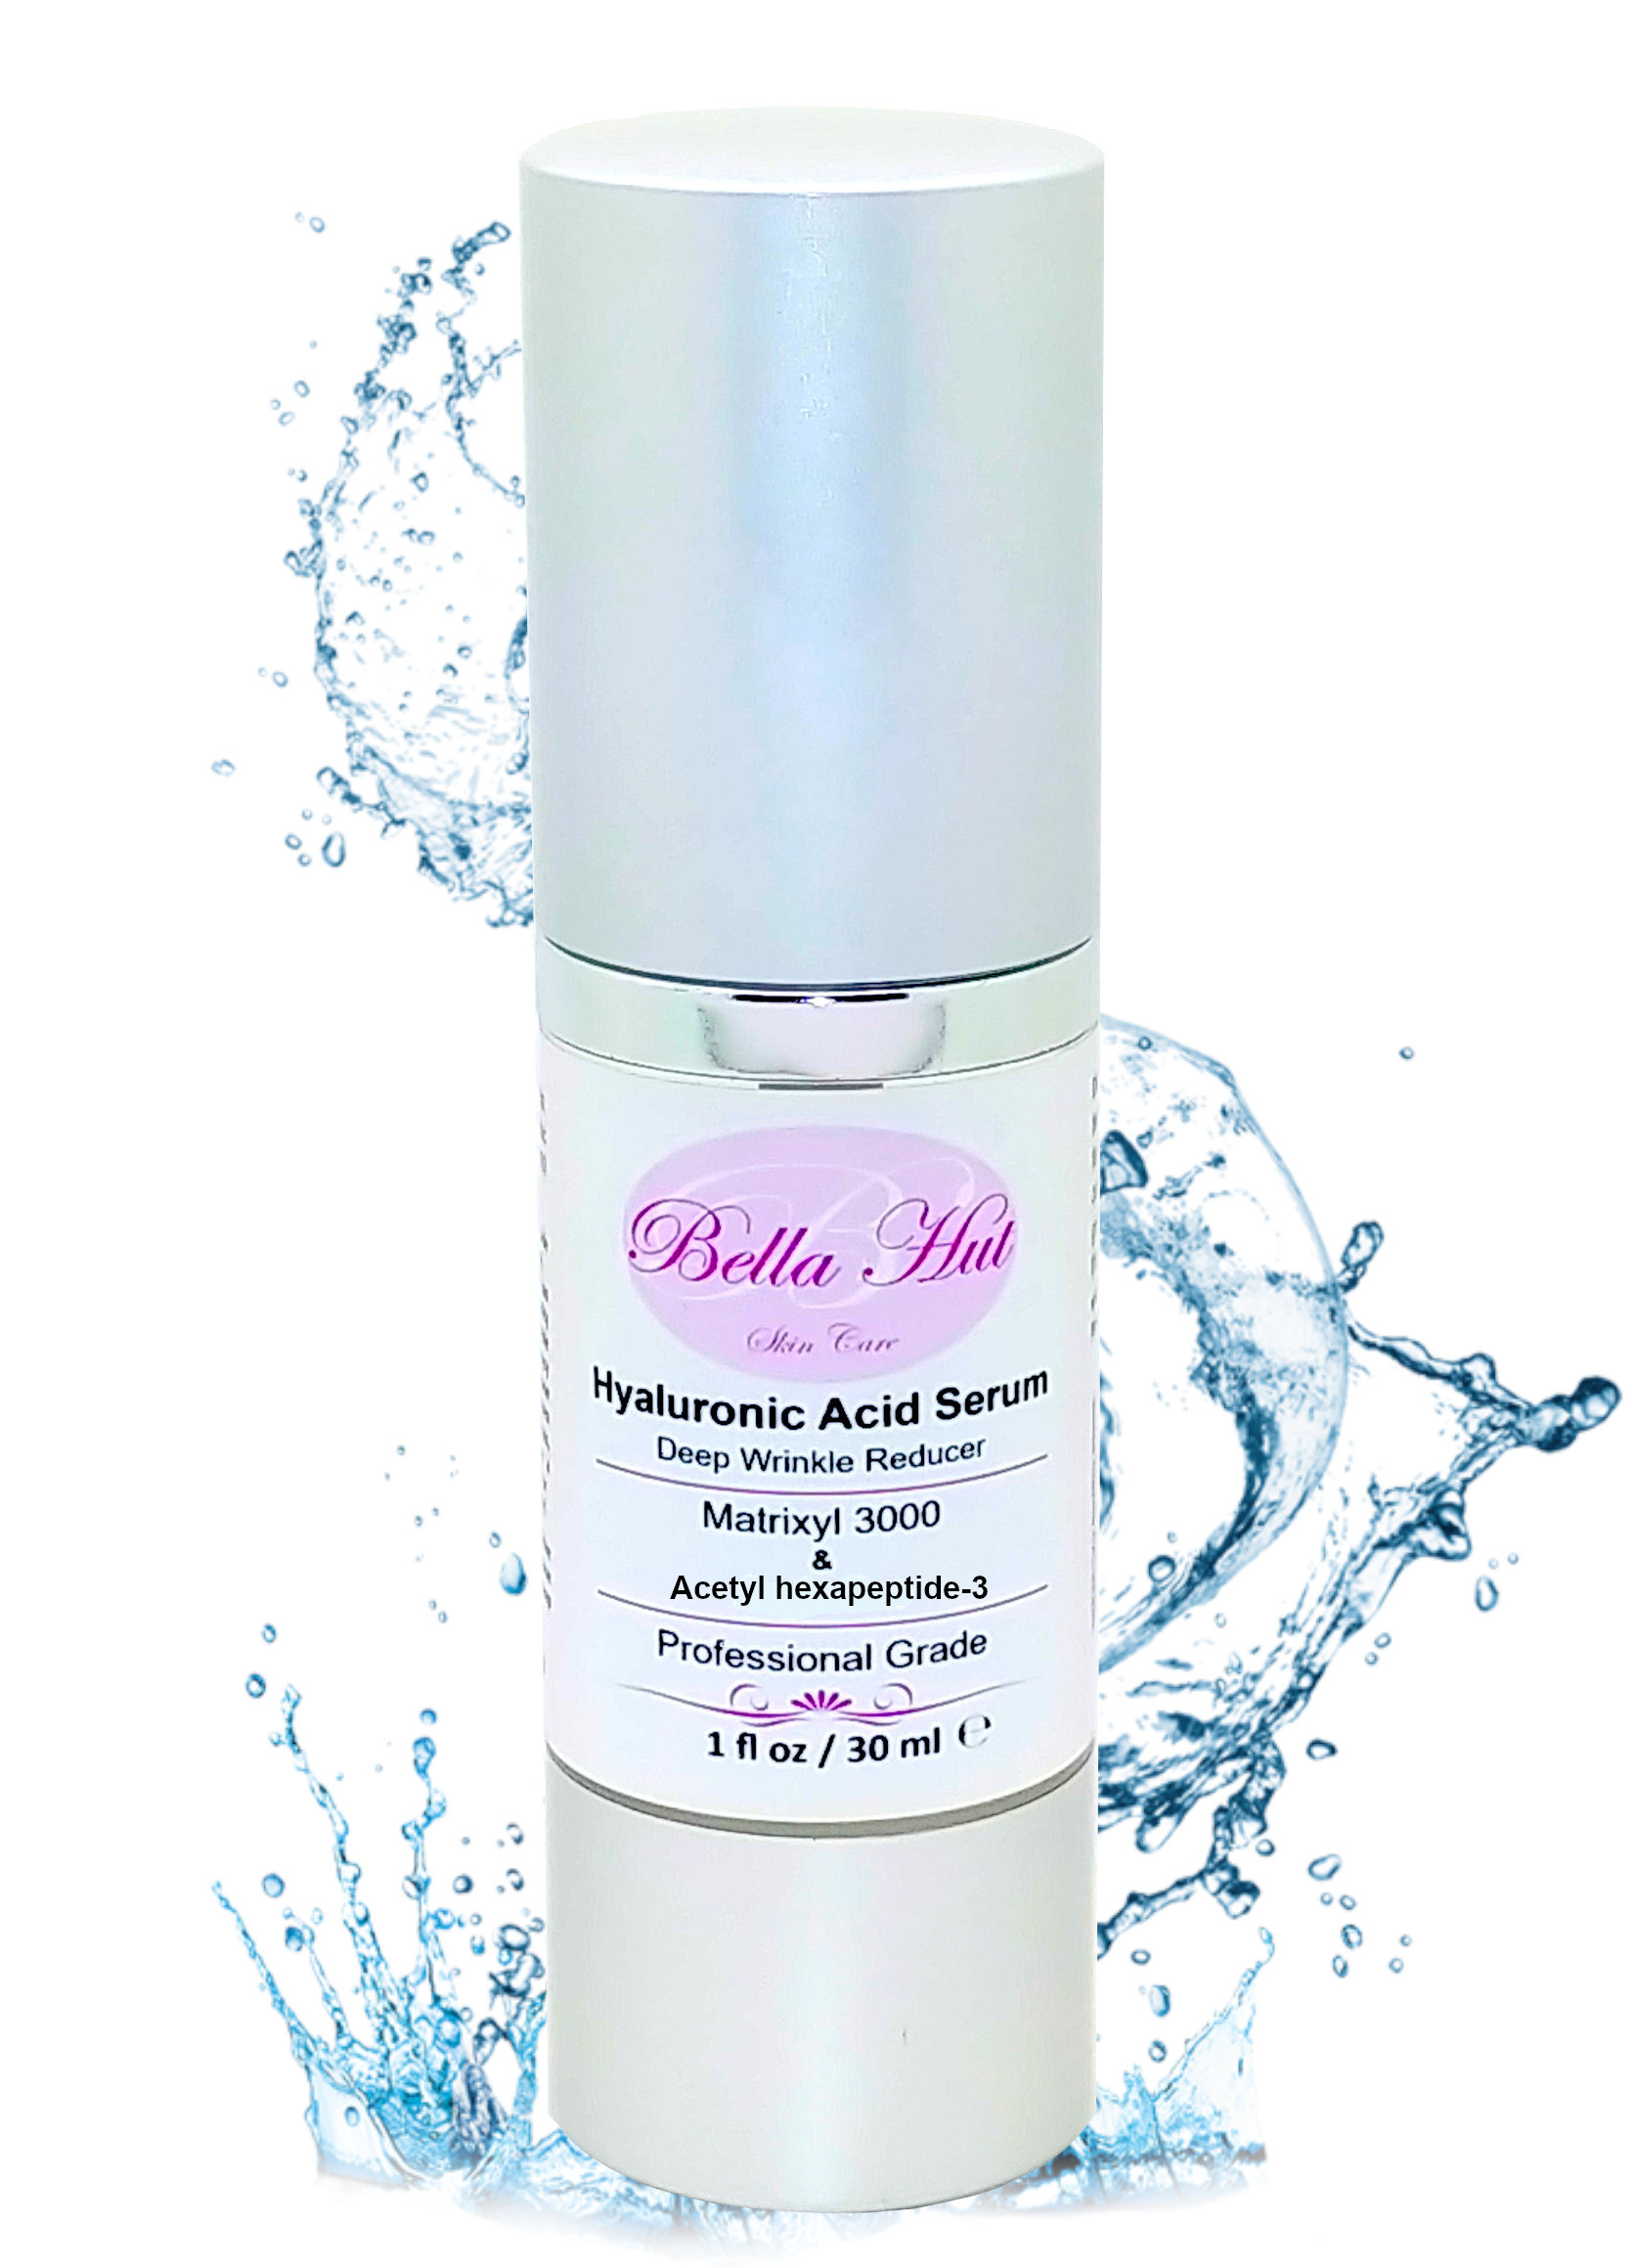 100% Hyaluronic Acid Serum with Matrixyl 3000 and Acetyl hexapeptide-3 Wrinkle Reduction